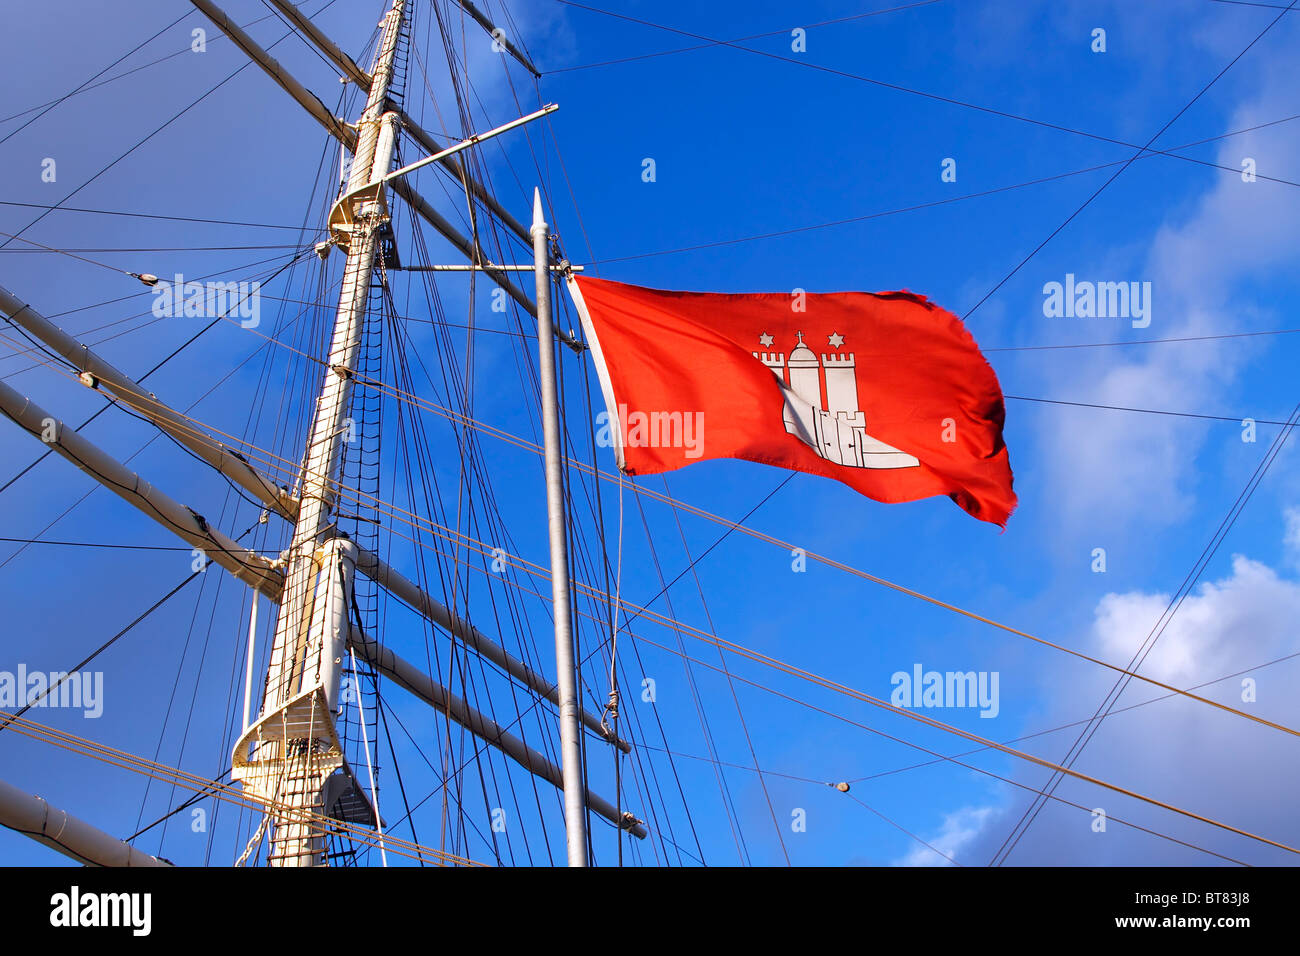 Red flag of Hamburg in front of the mast and rigging of the historic sailing ship Rickmer Rickmers, museums ship - Stock Image